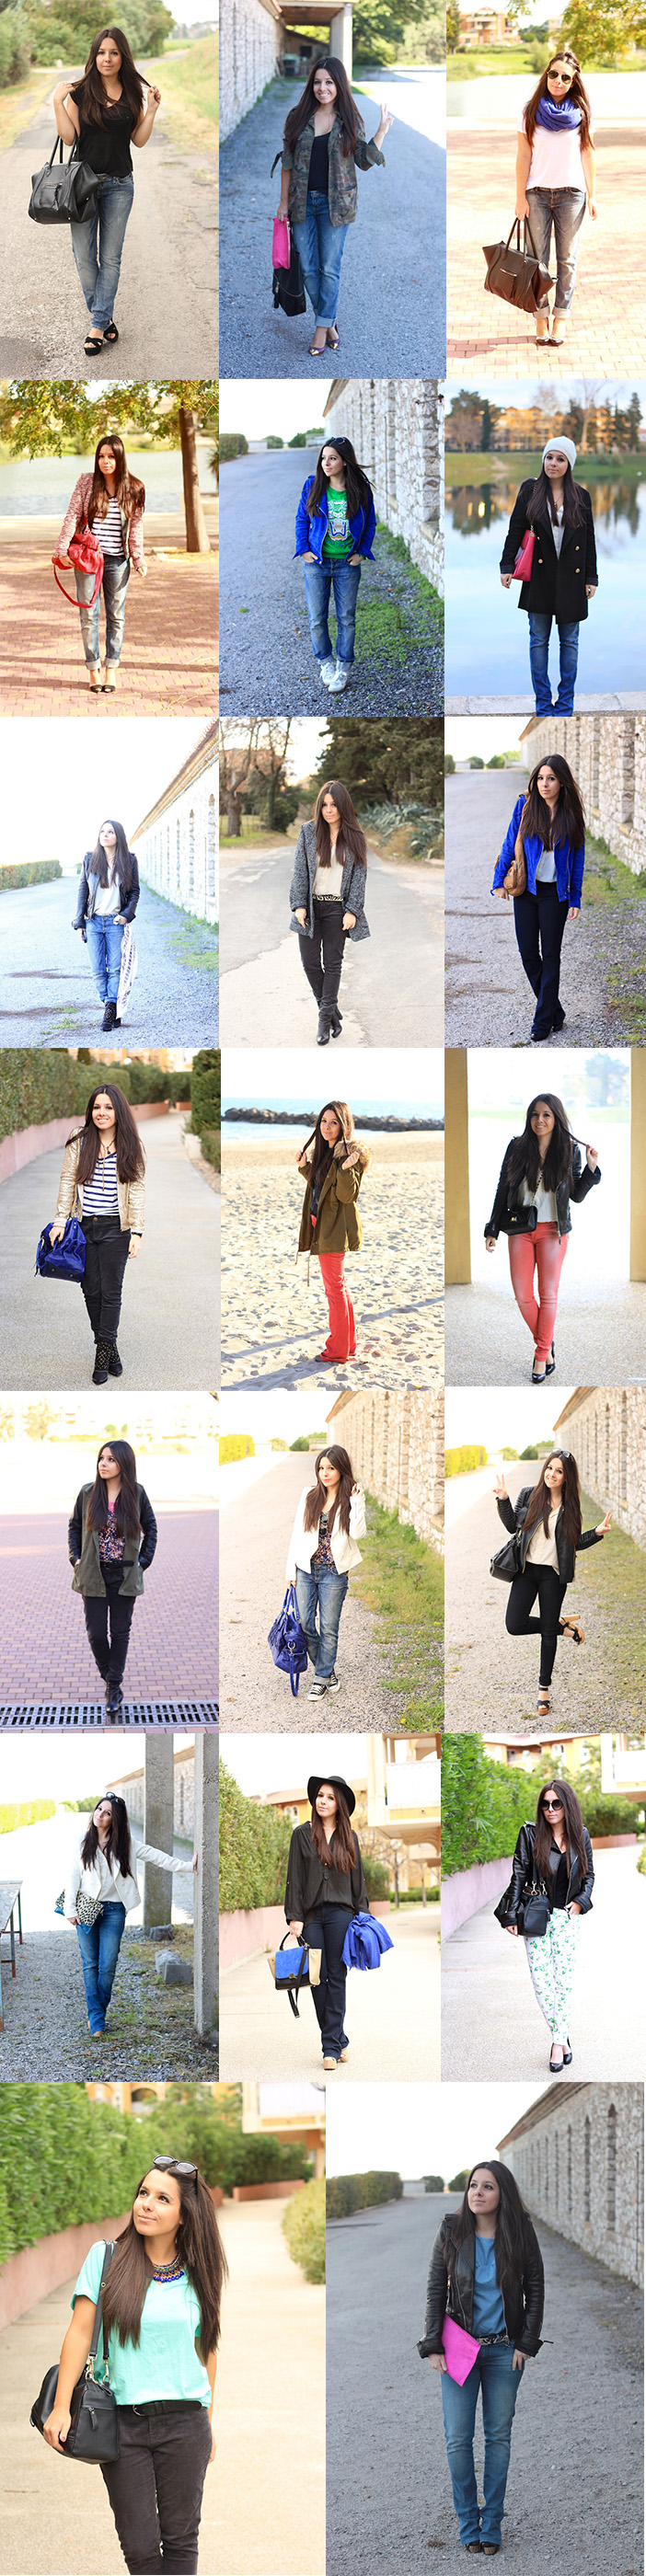 Chouettes jeans! (Concours inside)